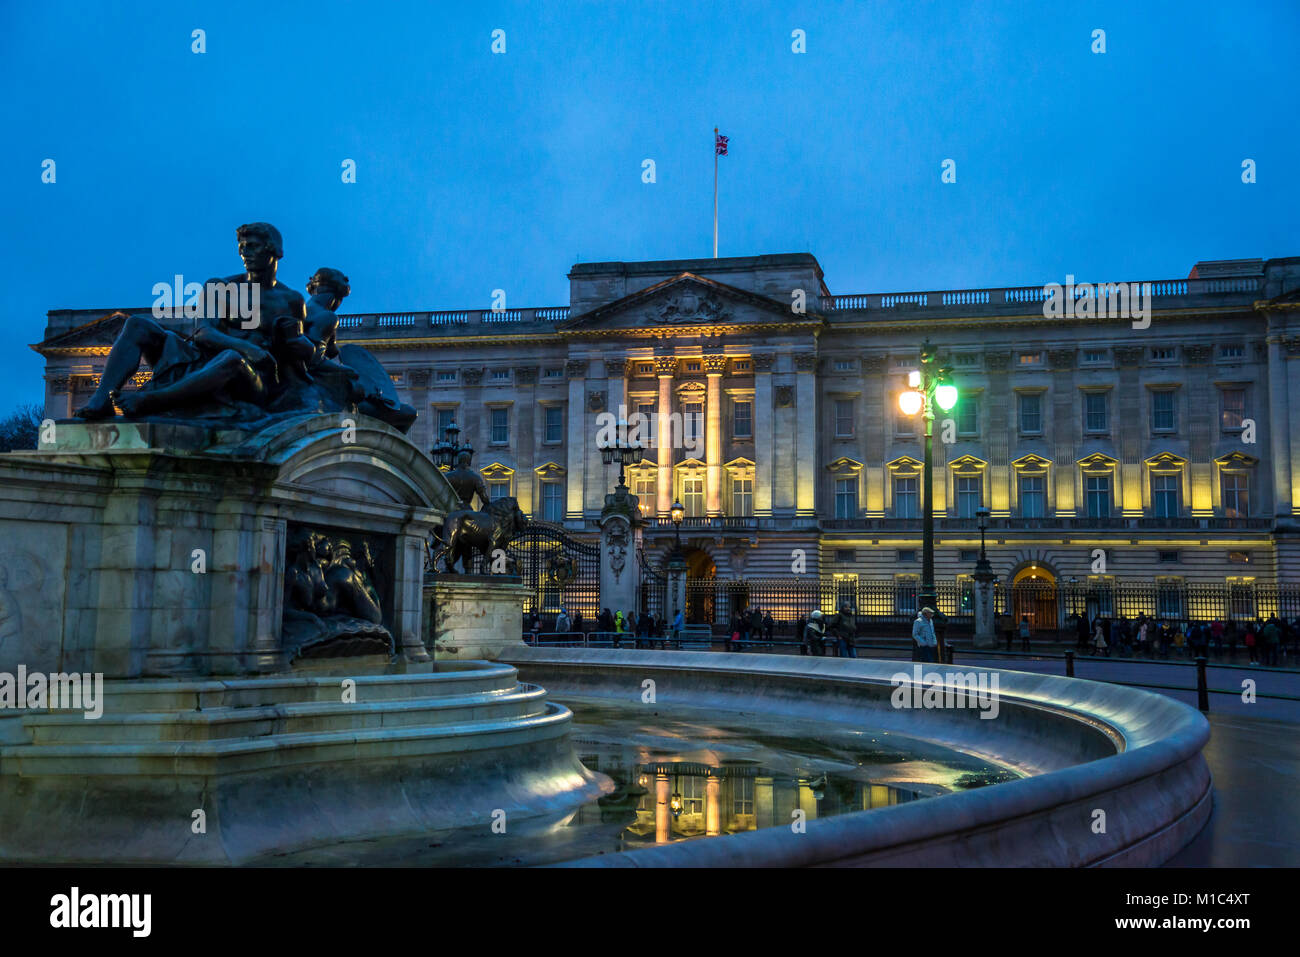 Buckingham Palace is the London residence and administrative headquarters of the reigning monarch of the United Kingdom, London, England, UK Stock Photo